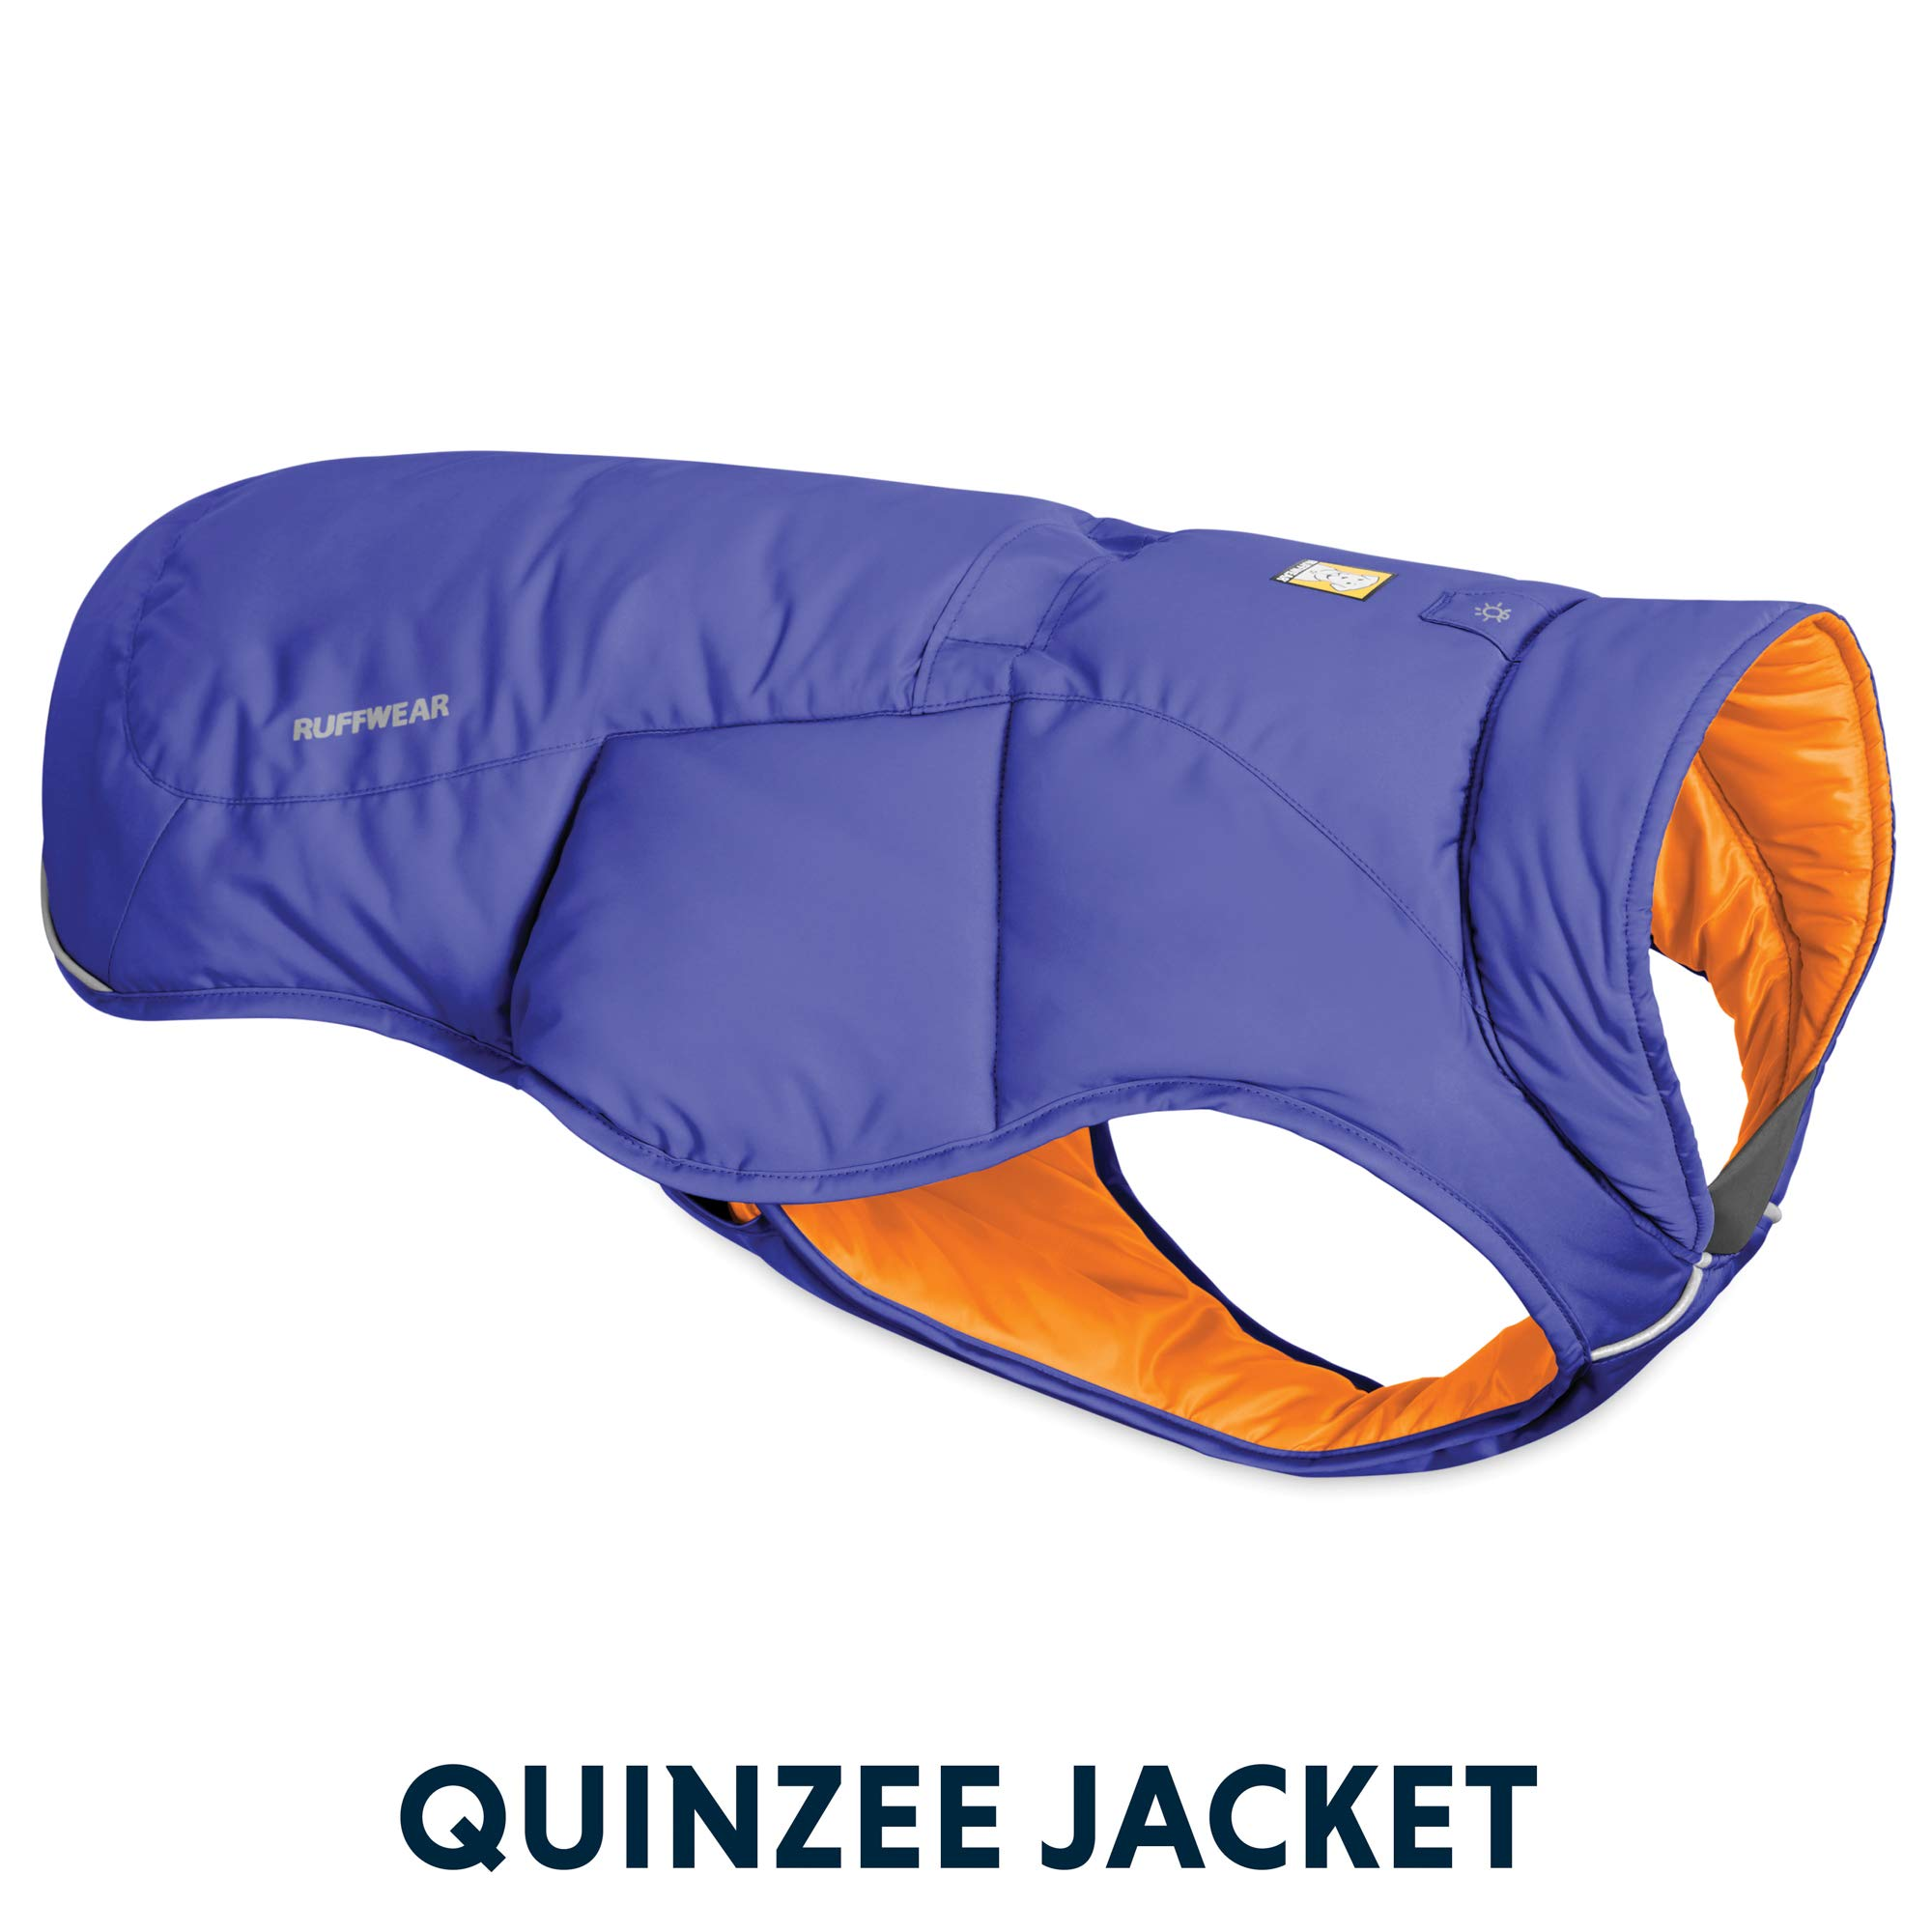 RUFFWEAR - Quinzee Insulated, Water Resistant Jacket for Dogs with Stuff Sack, Huckleberry Blue, Medium